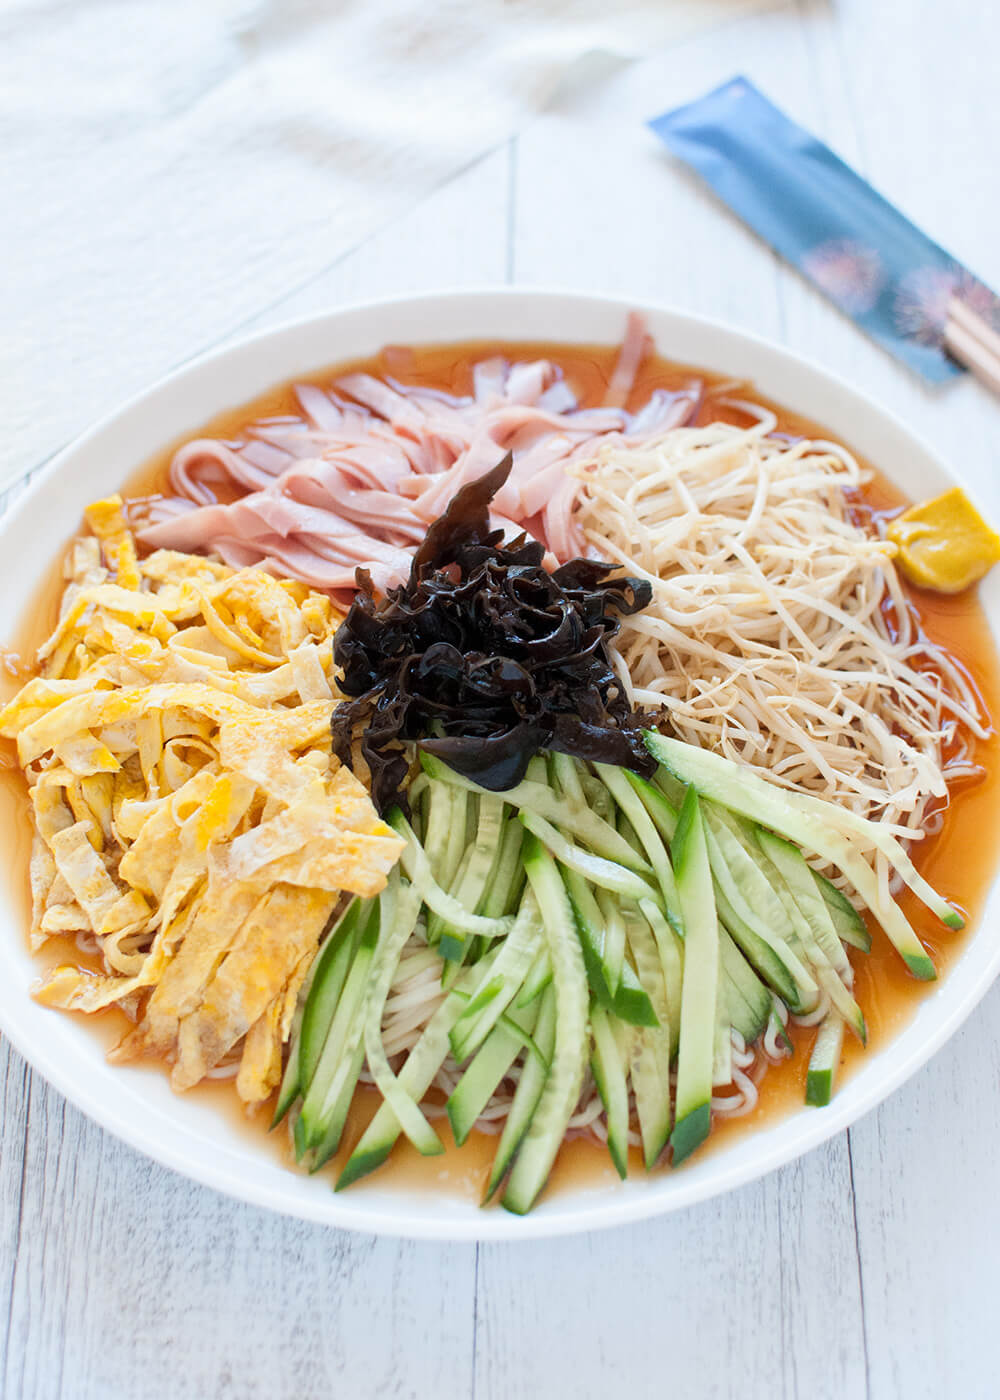 Hiyashi chka cold ramen recipetin japan hiyashi chka is made with cold chinese style egg noodles with sweet vinegar sauce and topped with vegetables egg and ham it is a great dish to have on a forumfinder Gallery